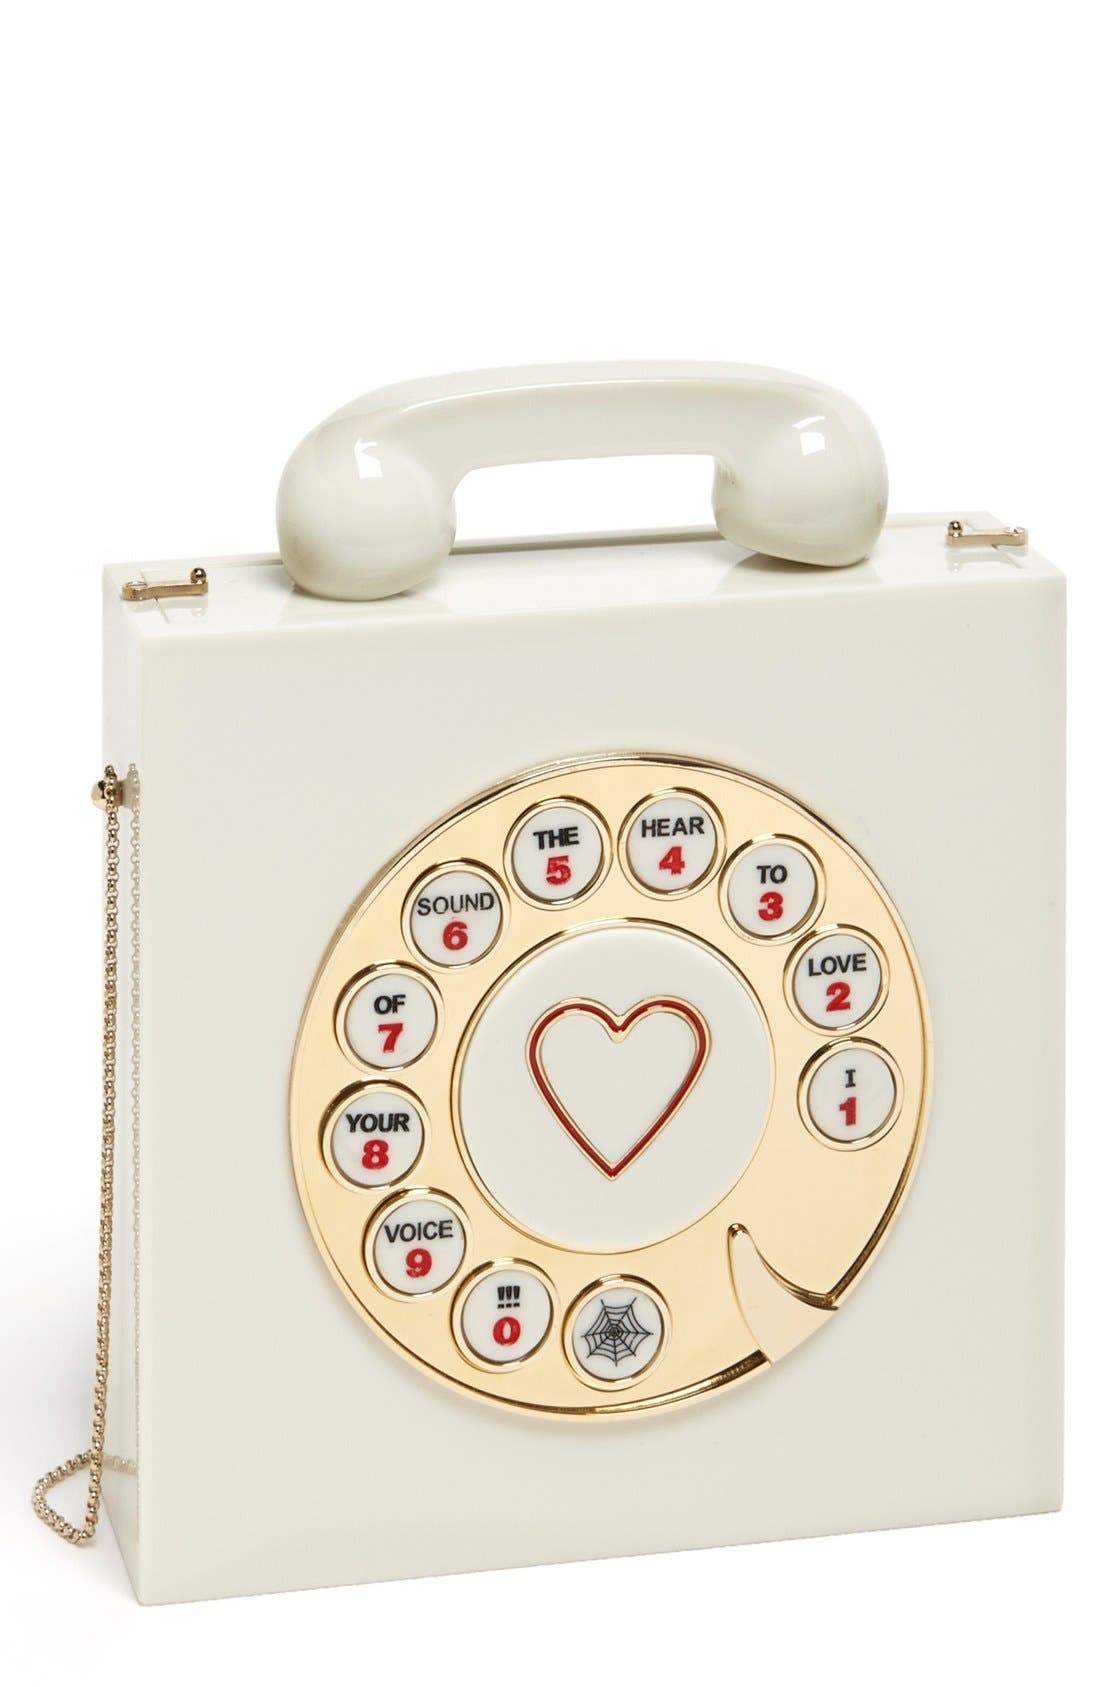 Main Image - Charlotte Olympia 'Chatterbox' Clutch